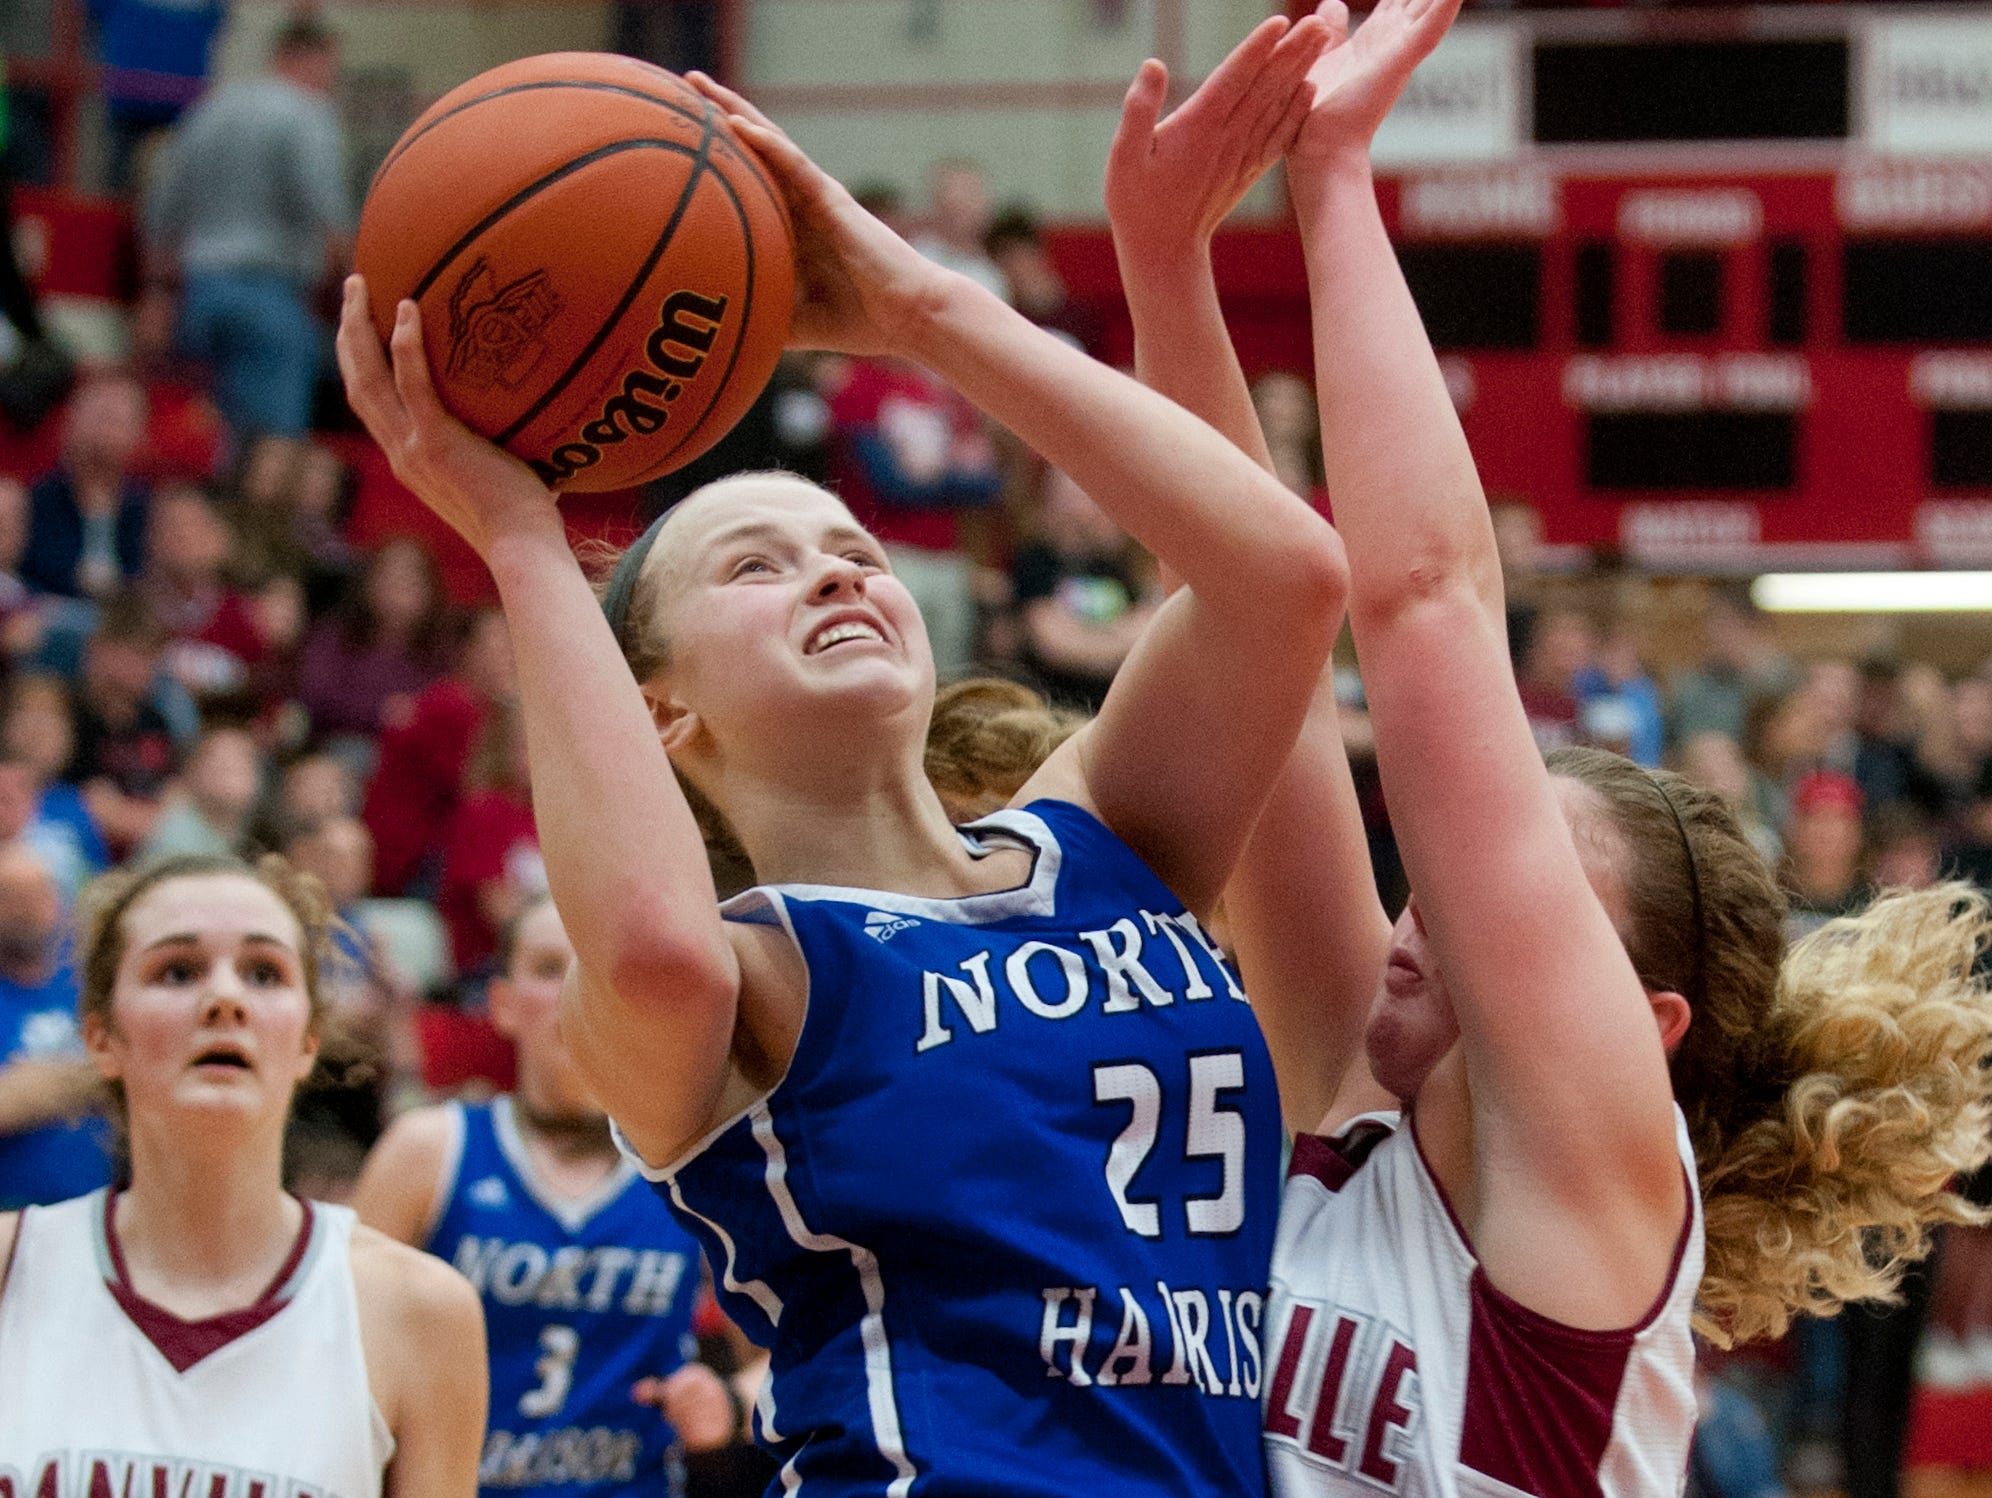 North Harrison guard Cali Nolot collides with Danville (In.) guard Lexi Riggles as Nolot drives to the basket. 18 February 2017